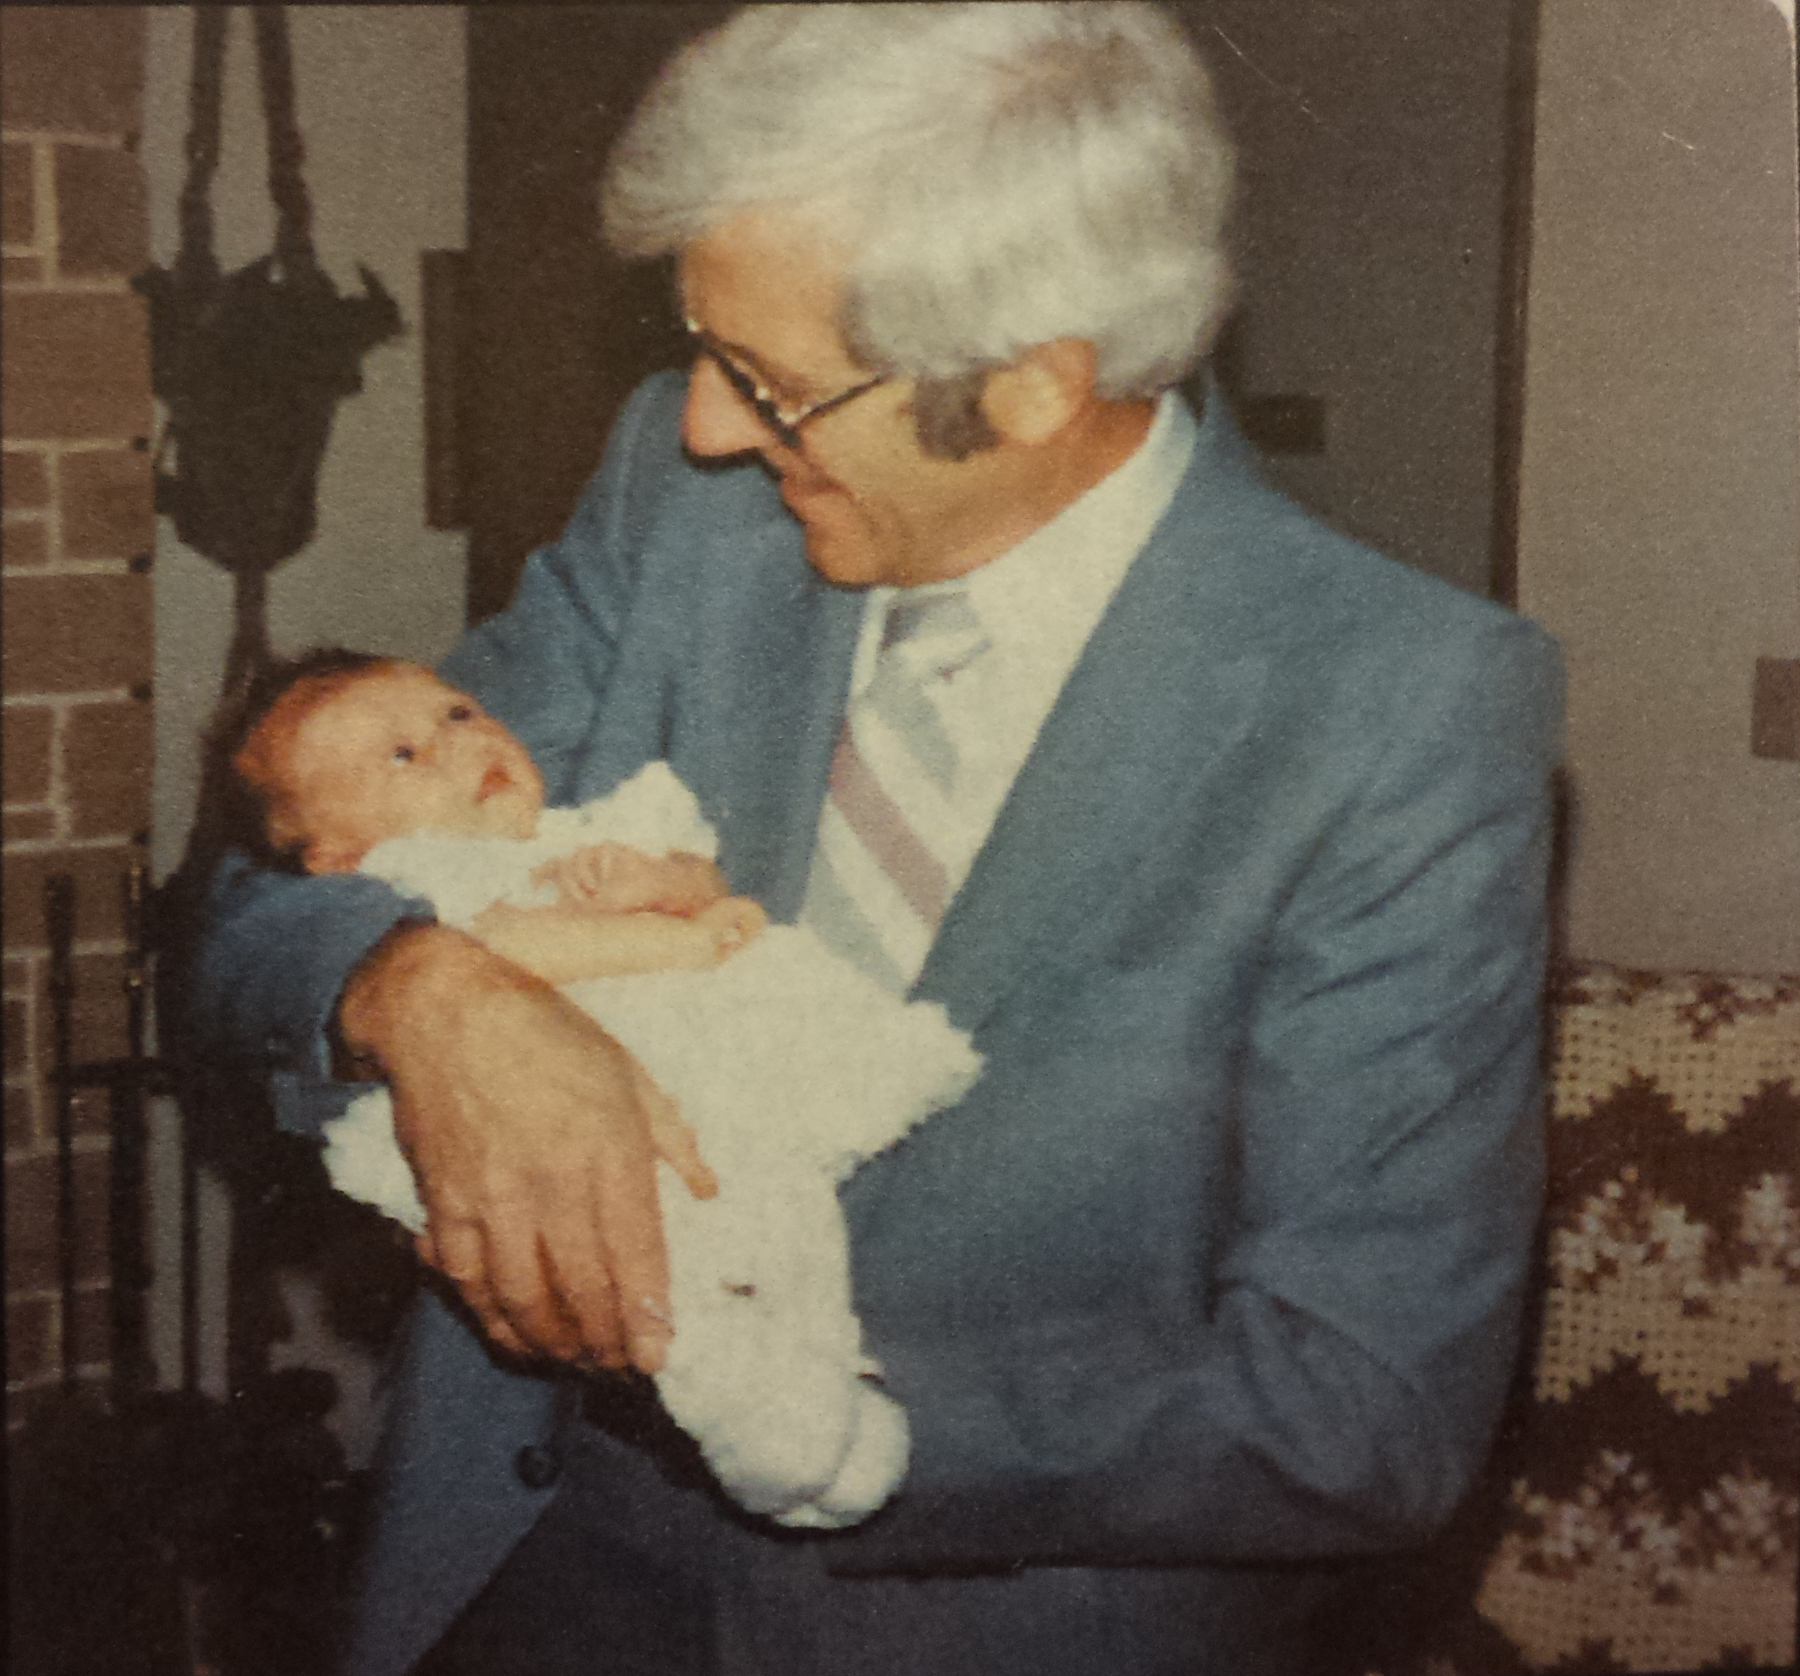 Grandpa holding me when I was born.